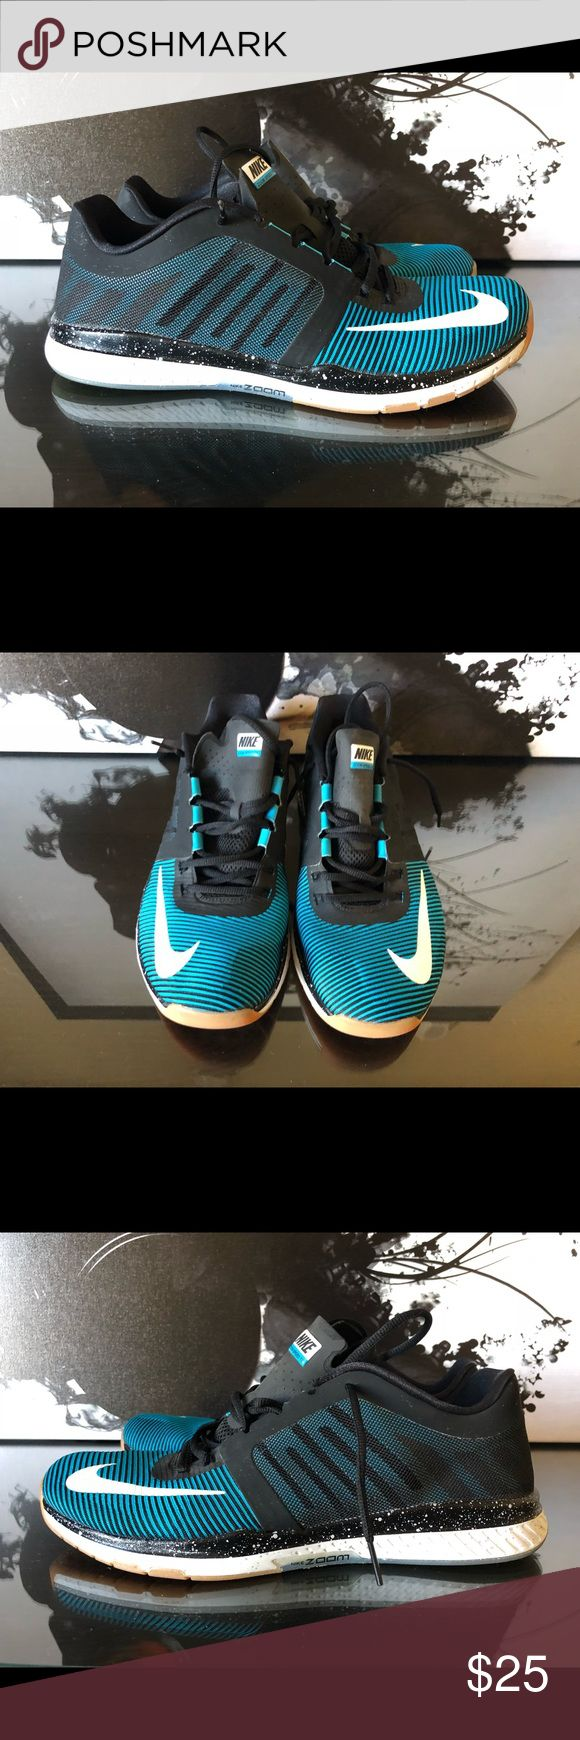 MENS NIKE ZOOM SPEED TR3 TRAINING SHOES 804401 ✔️ Shoes are pre owned, rarely worn tho still in excellent condition.  ✔️ I do not have the box for these.  ✔️ Will ship out within 24 hours.  ❌ No transactions outside of Posh ❌ No offers on this pair, priced to sell. Nike Shoes Athletic Shoes